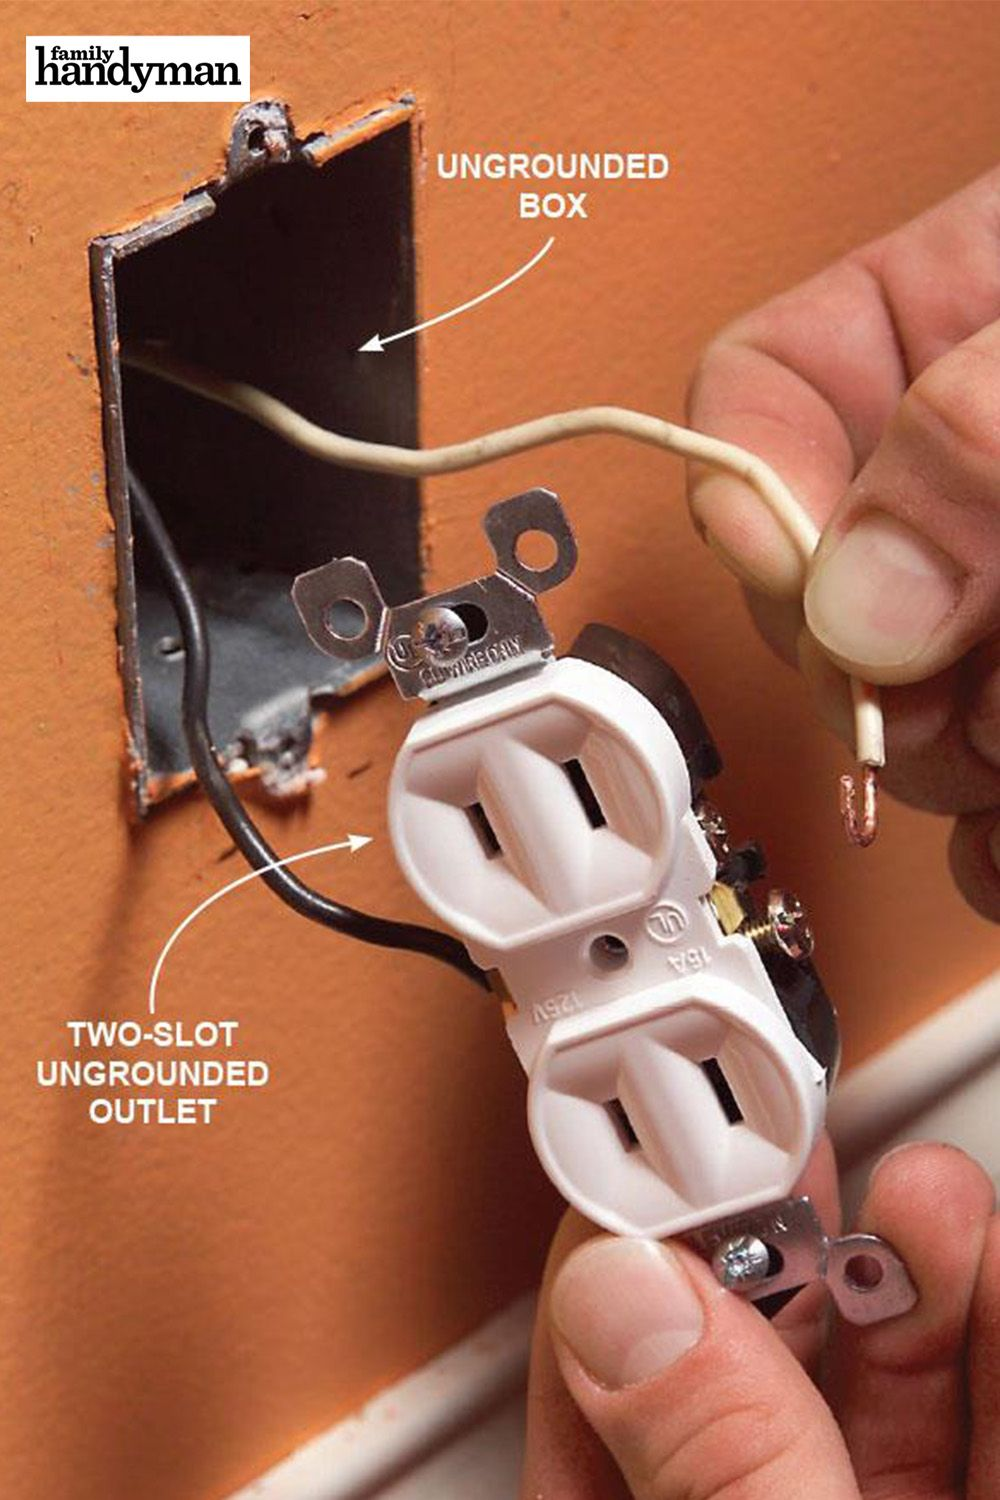 Top 10 Electrical Mistakes Diy Home Repair Diy Home Improvement Home Repair